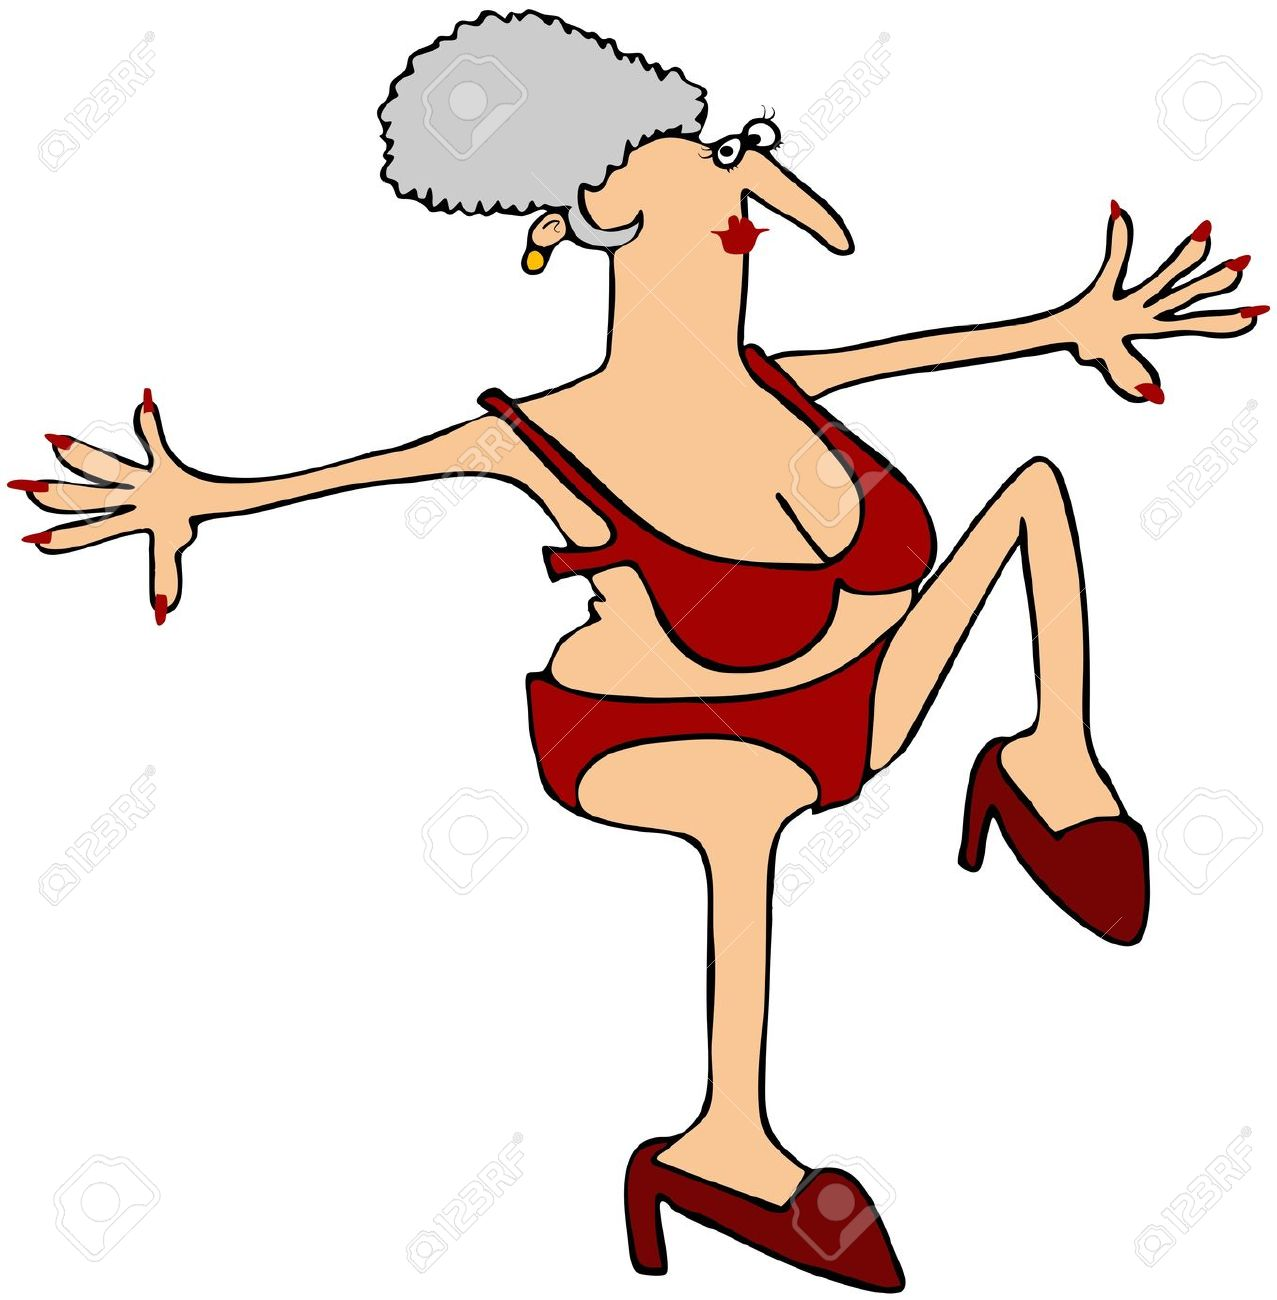 Image result for cartoon older woman